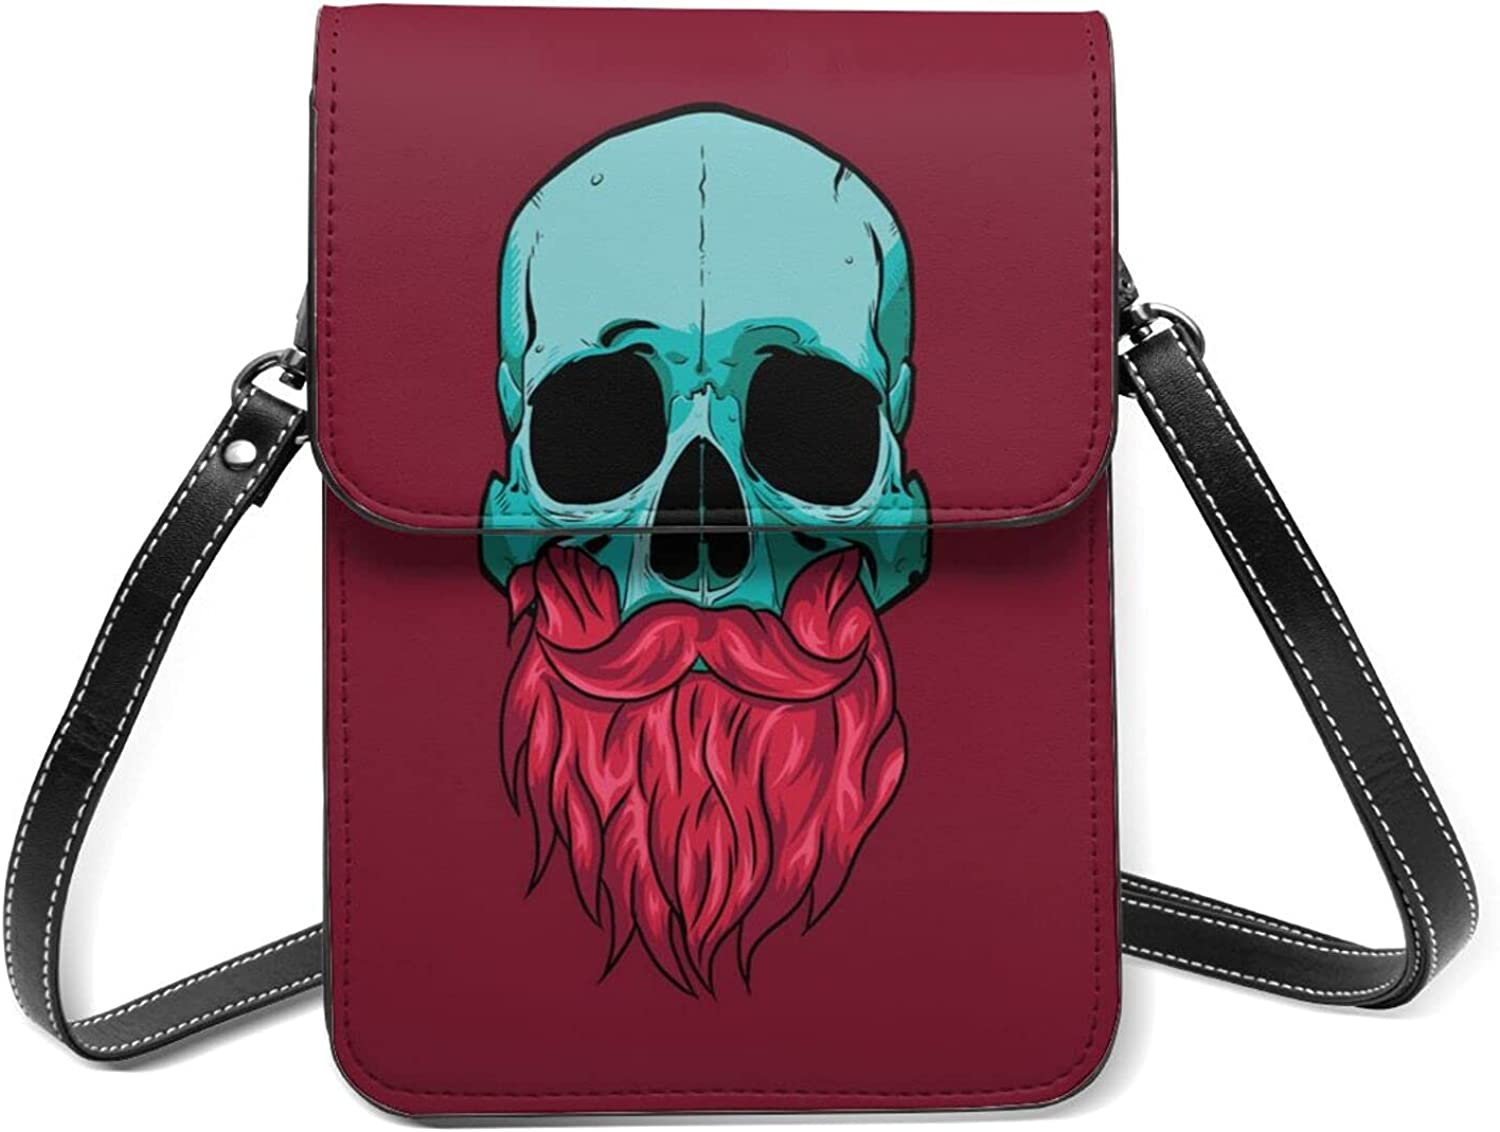 With Red Finally resale start Beard And Many popular brands Green Skull Cell Purse Small Phone Flip Light